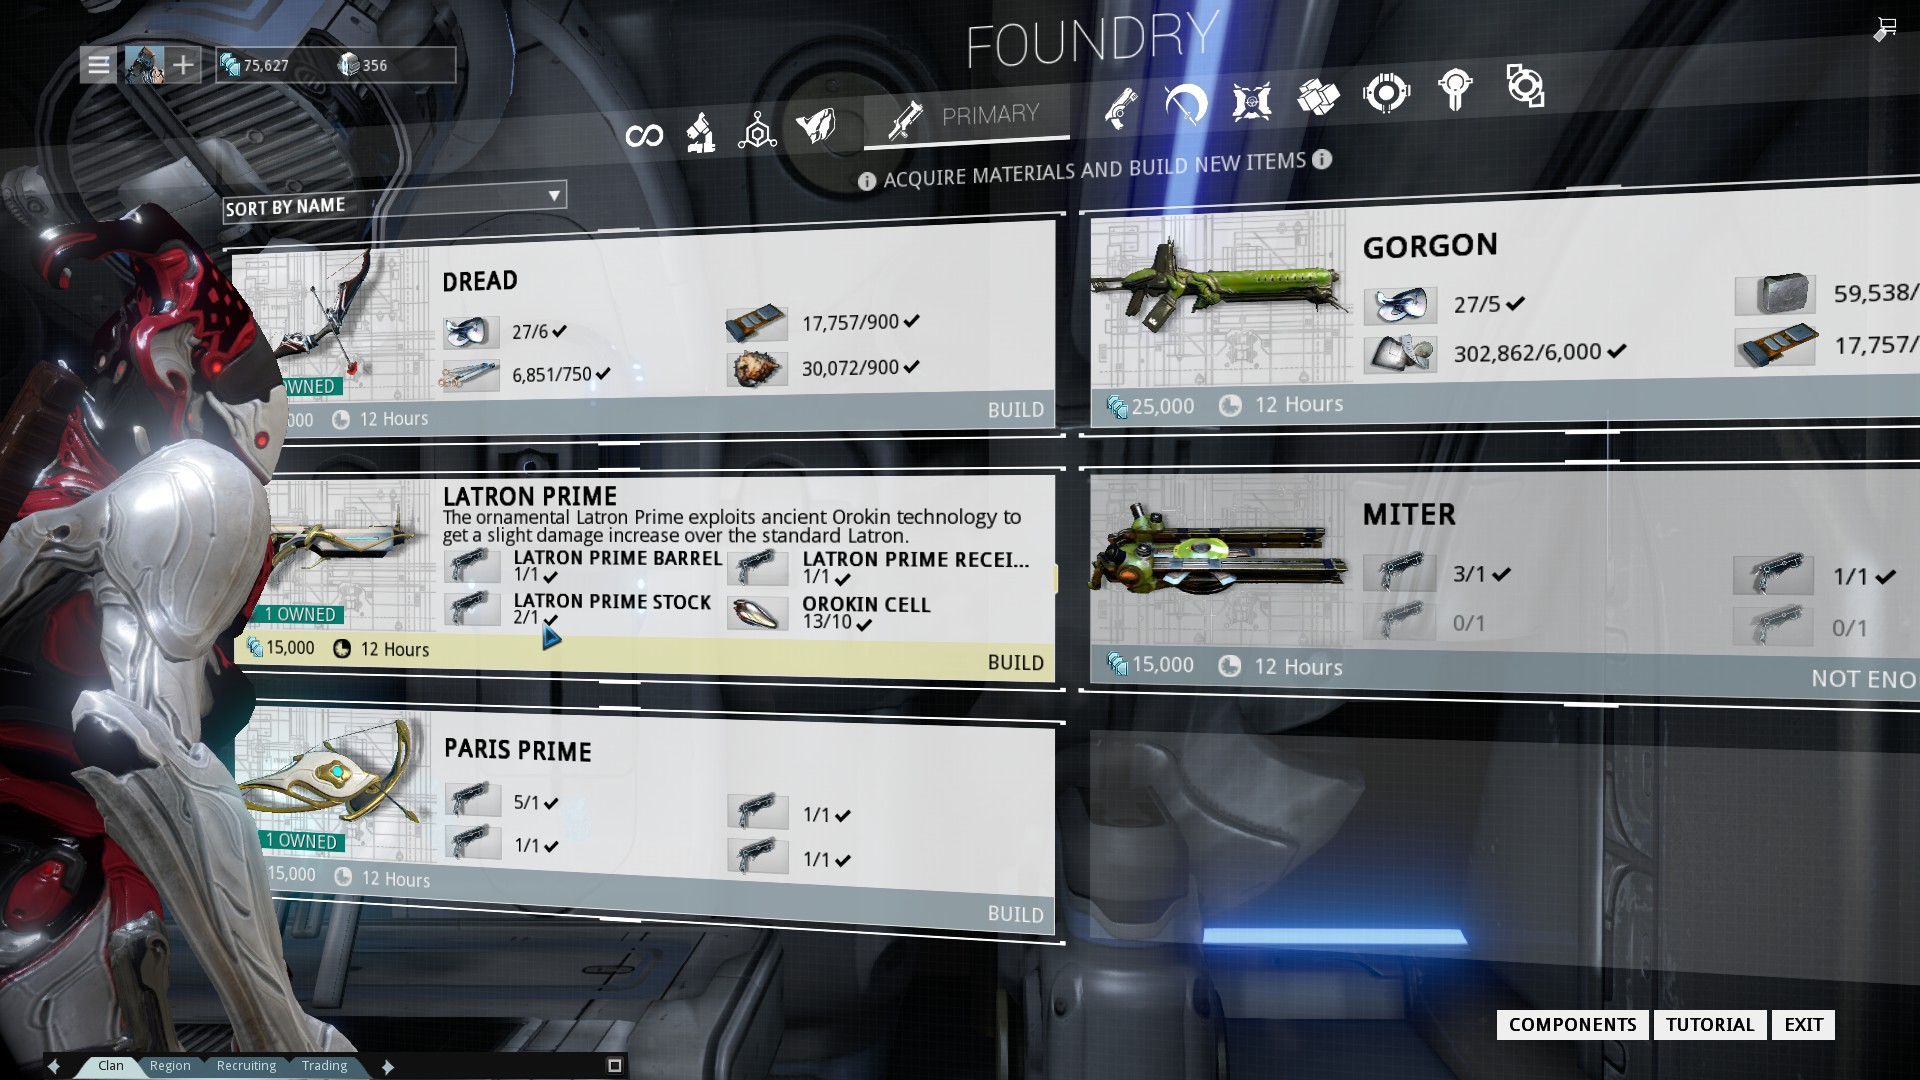 Warframe a beginners guide metadragon within the foundry you can craft new warframes weapons and items but you need malvernweather Gallery